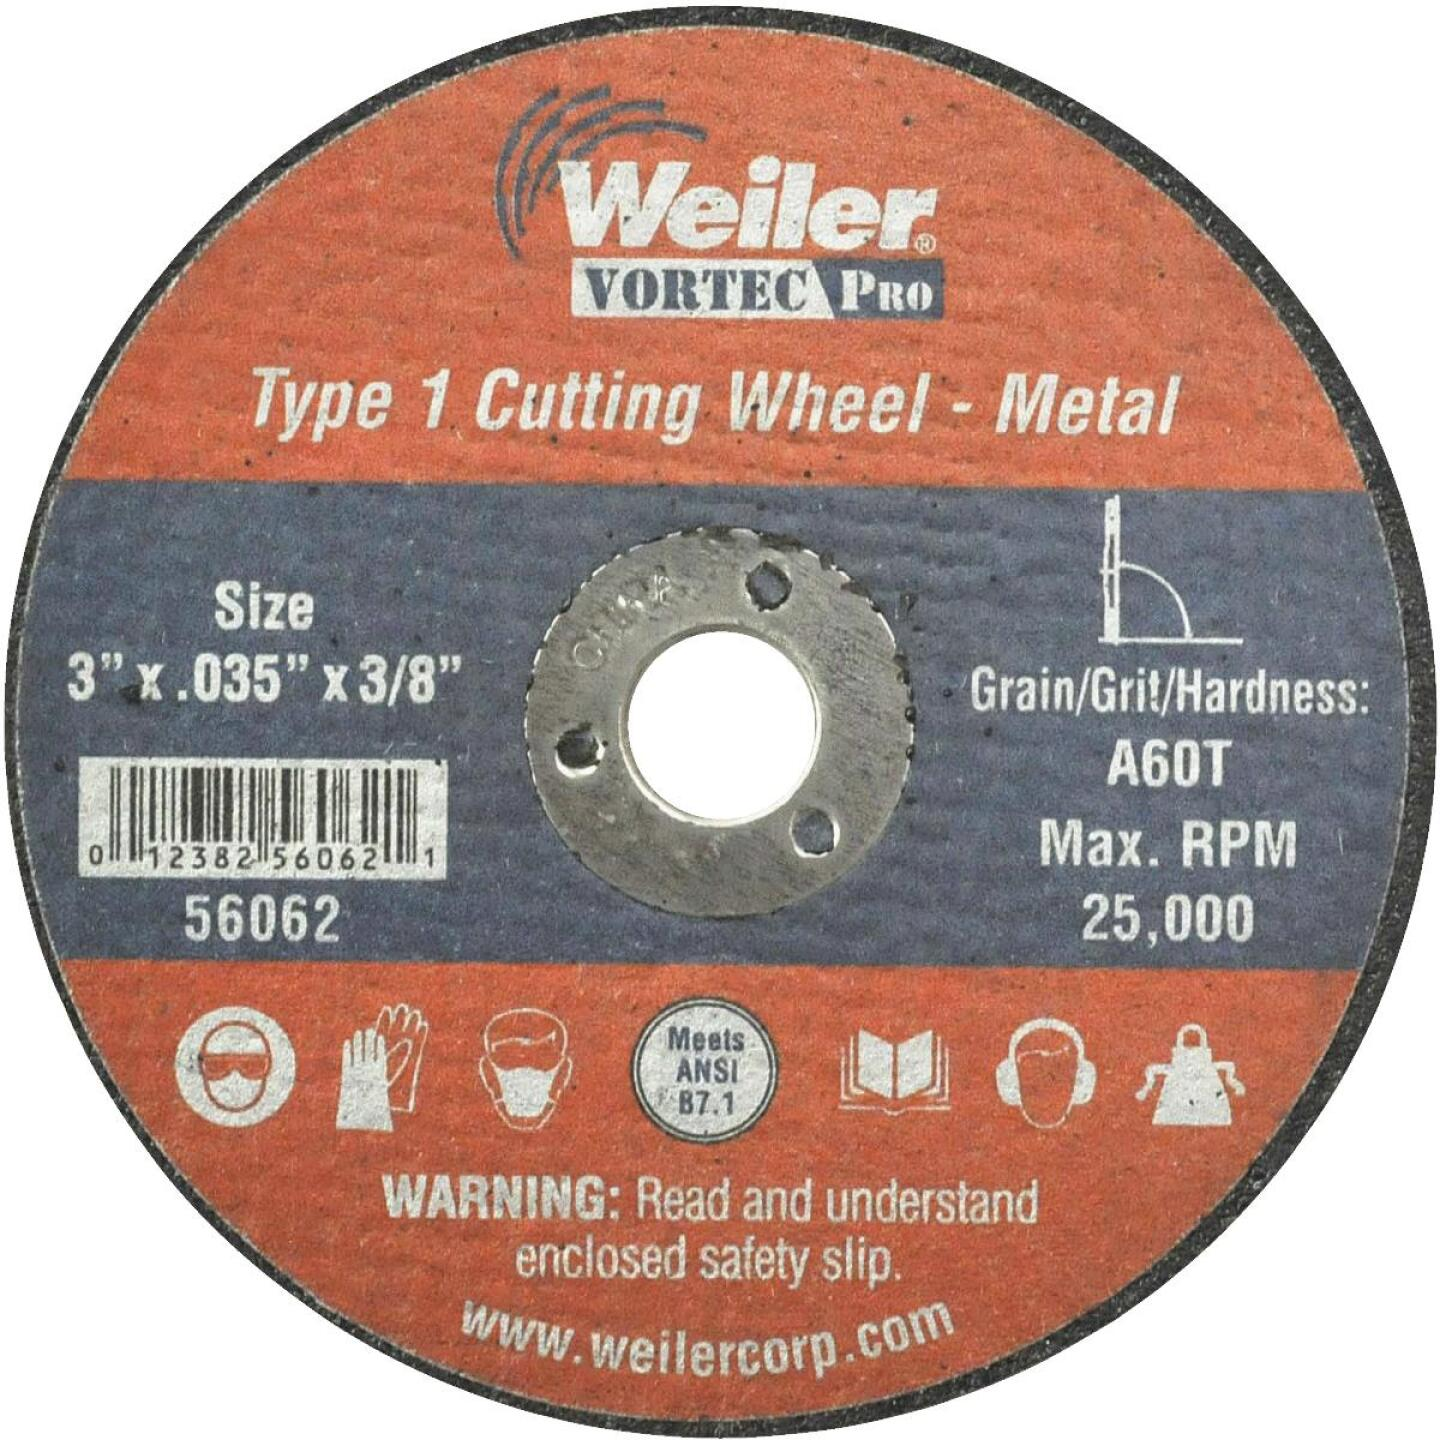 Weiler Vortec Type 1 3 In. x 1/32 In. x 3/8 In. Metal/Plastic Cut-Off Wheel Image 1